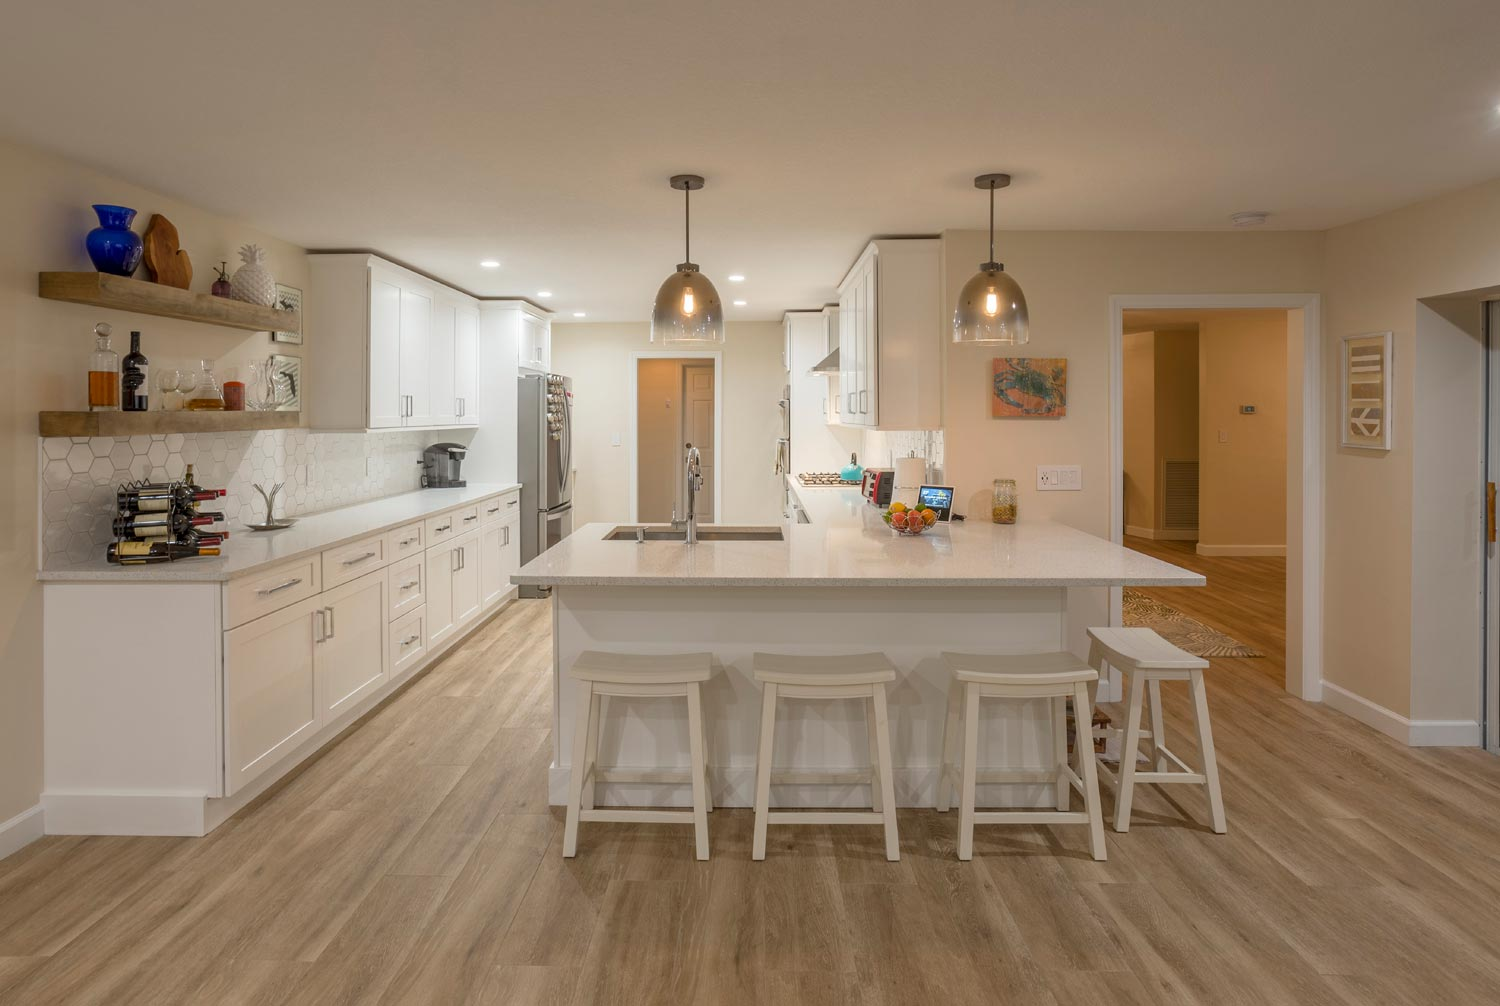 Rustic Kitchen Remodel in Palm Harbor Florida by Golden Construction Services